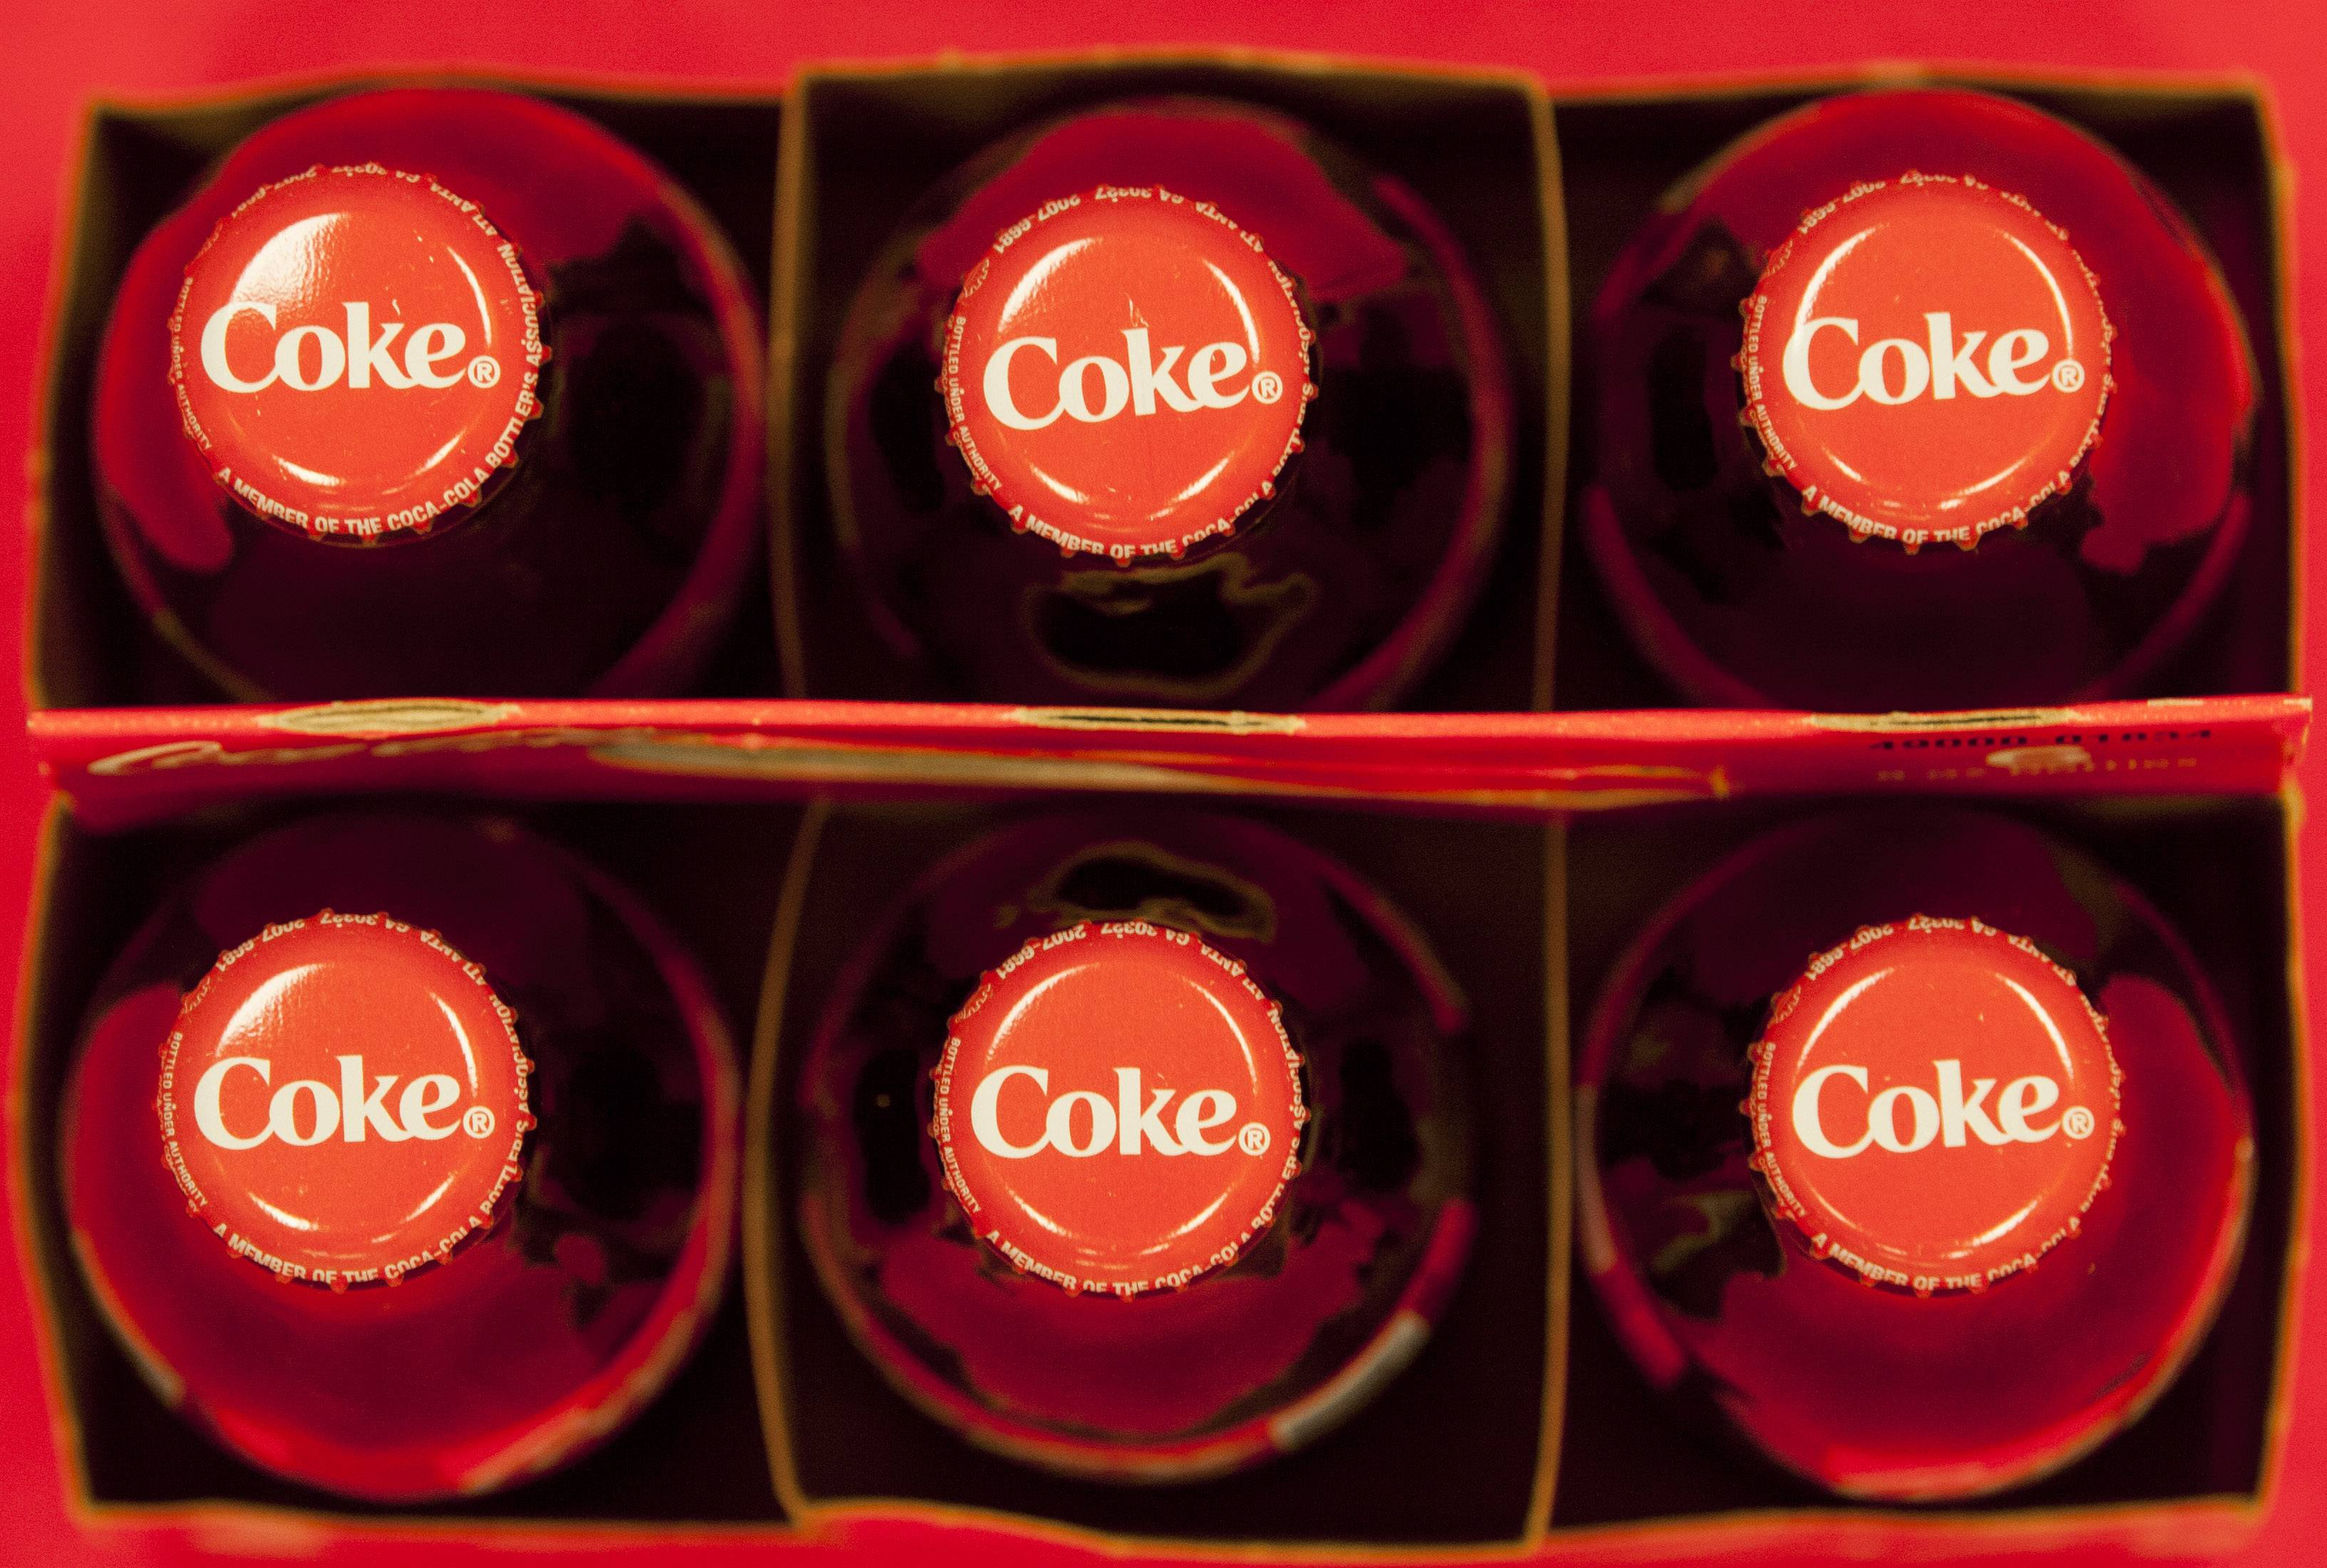 Coca-Cola says its profit fell in the fourth quarter as it sold less soda in North America.